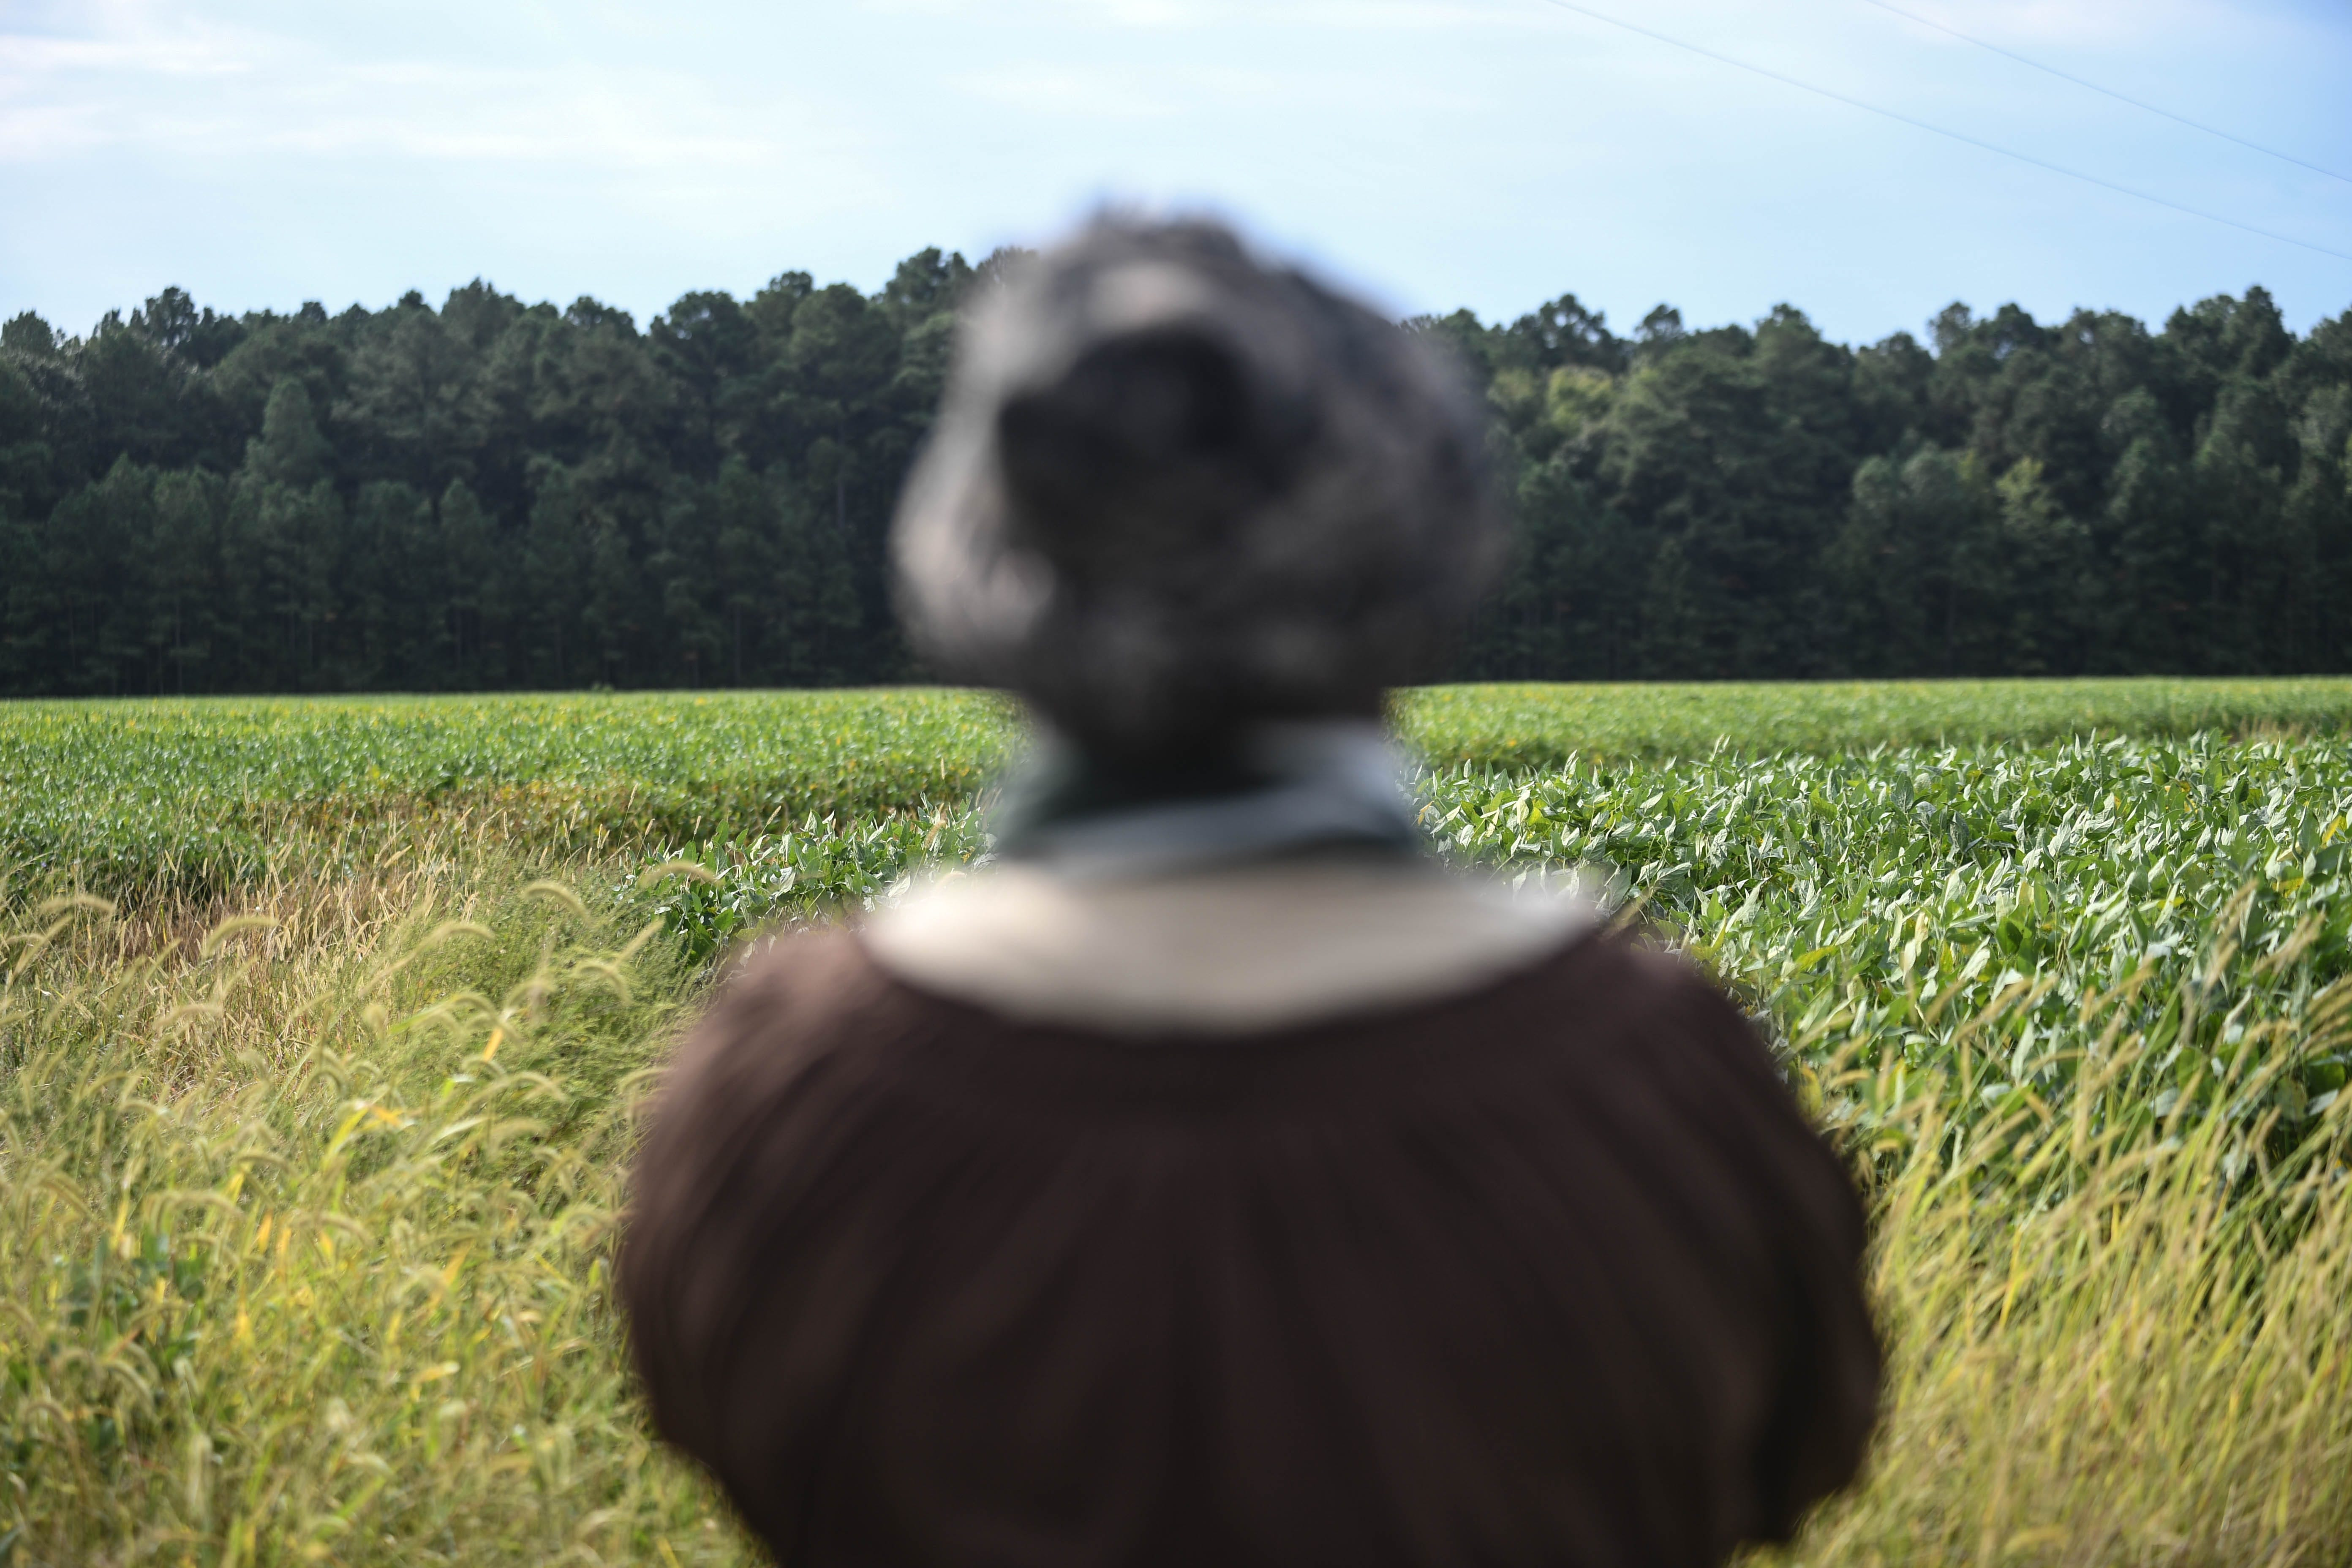 In the 1820s, Harriet Tubman lived her young life on Brodess Farm. Here, reenactor Yolanda Parker stands on the edge of a field. Brodess Farm can still be seen from Greenbrier Road in Cambridge, Maryland.